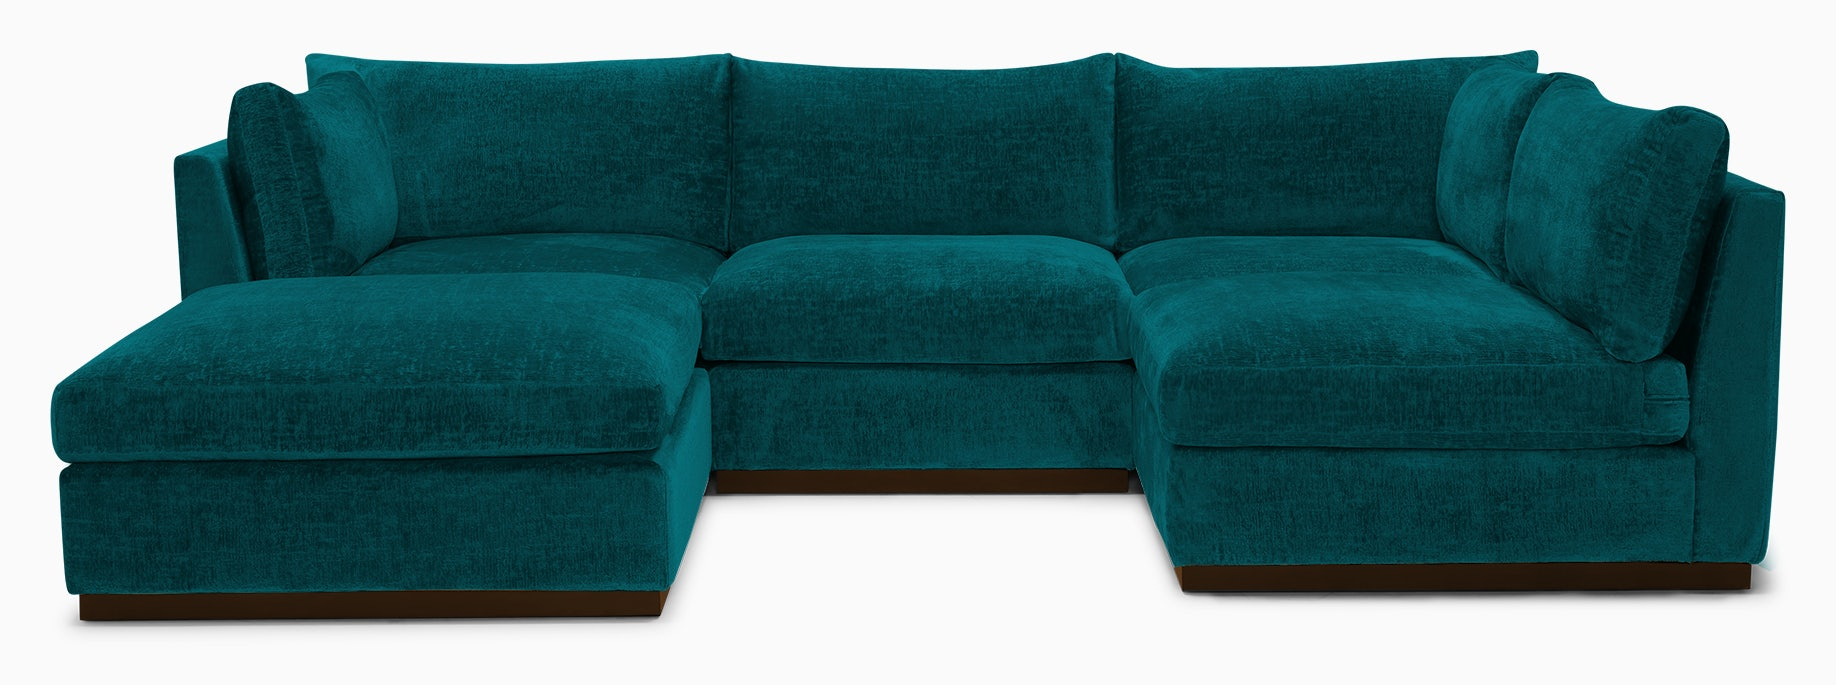 holt armless sofa sectional %285 piece%29 lucky turquoise